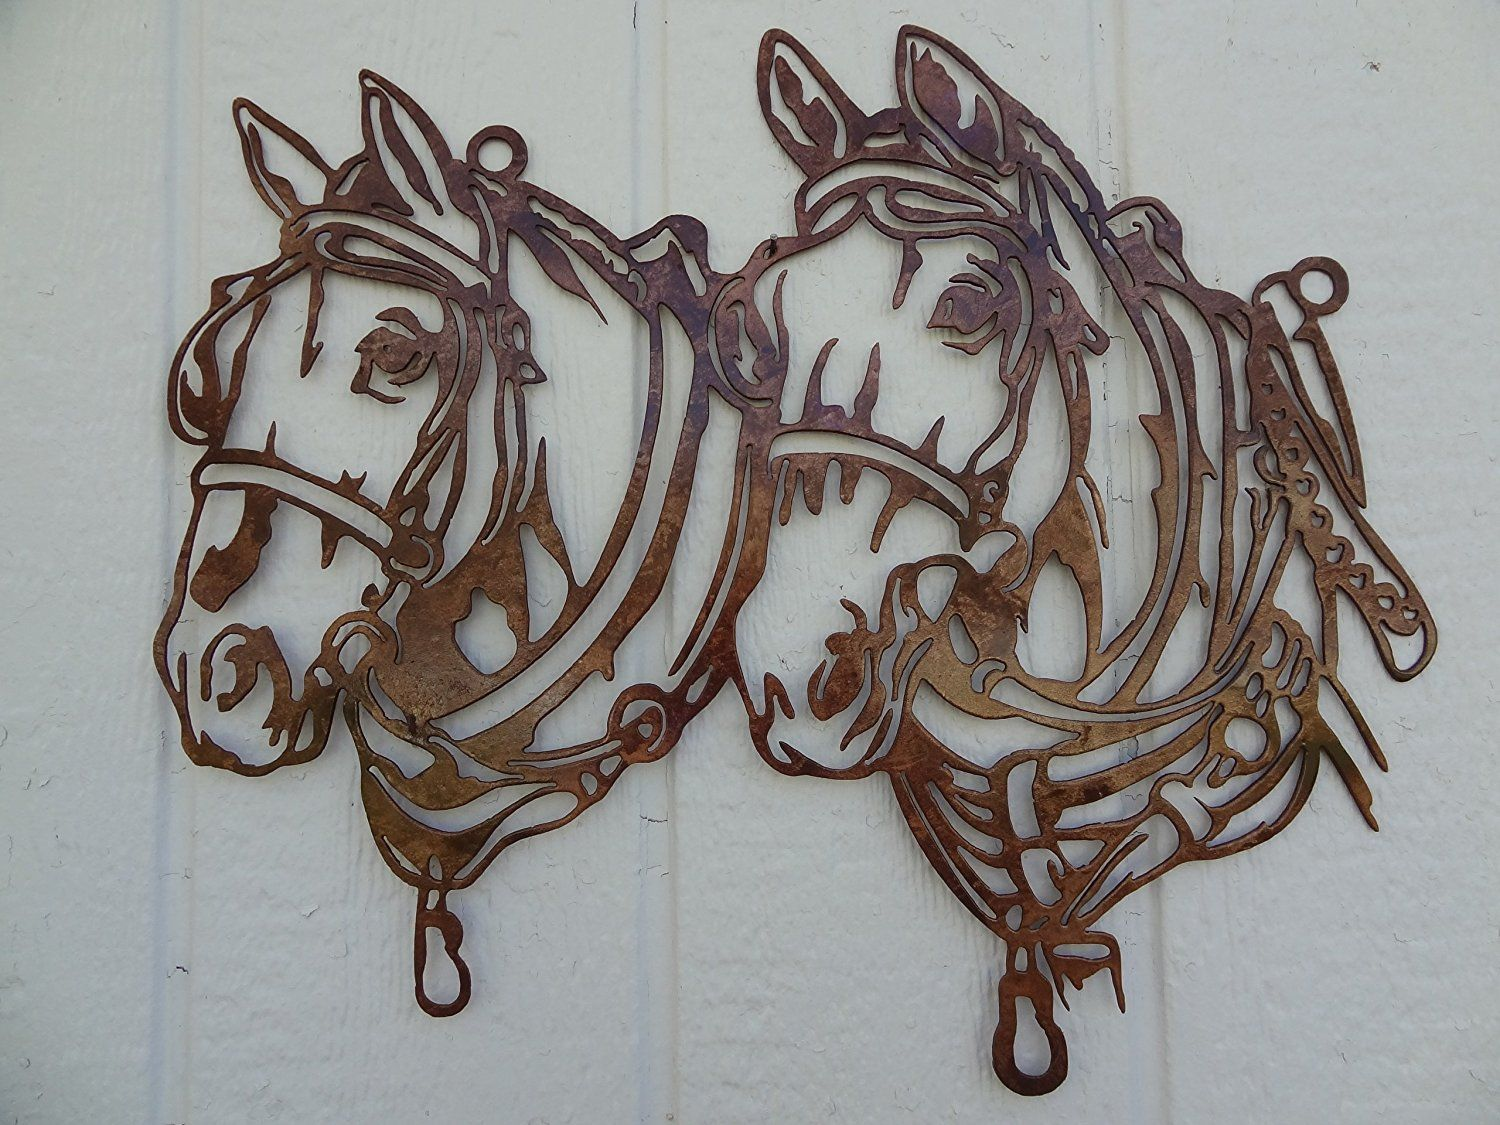 Tall Metal Wall Art Draft Horse Head Metal Wall Art Country Rustic Home Decor * See